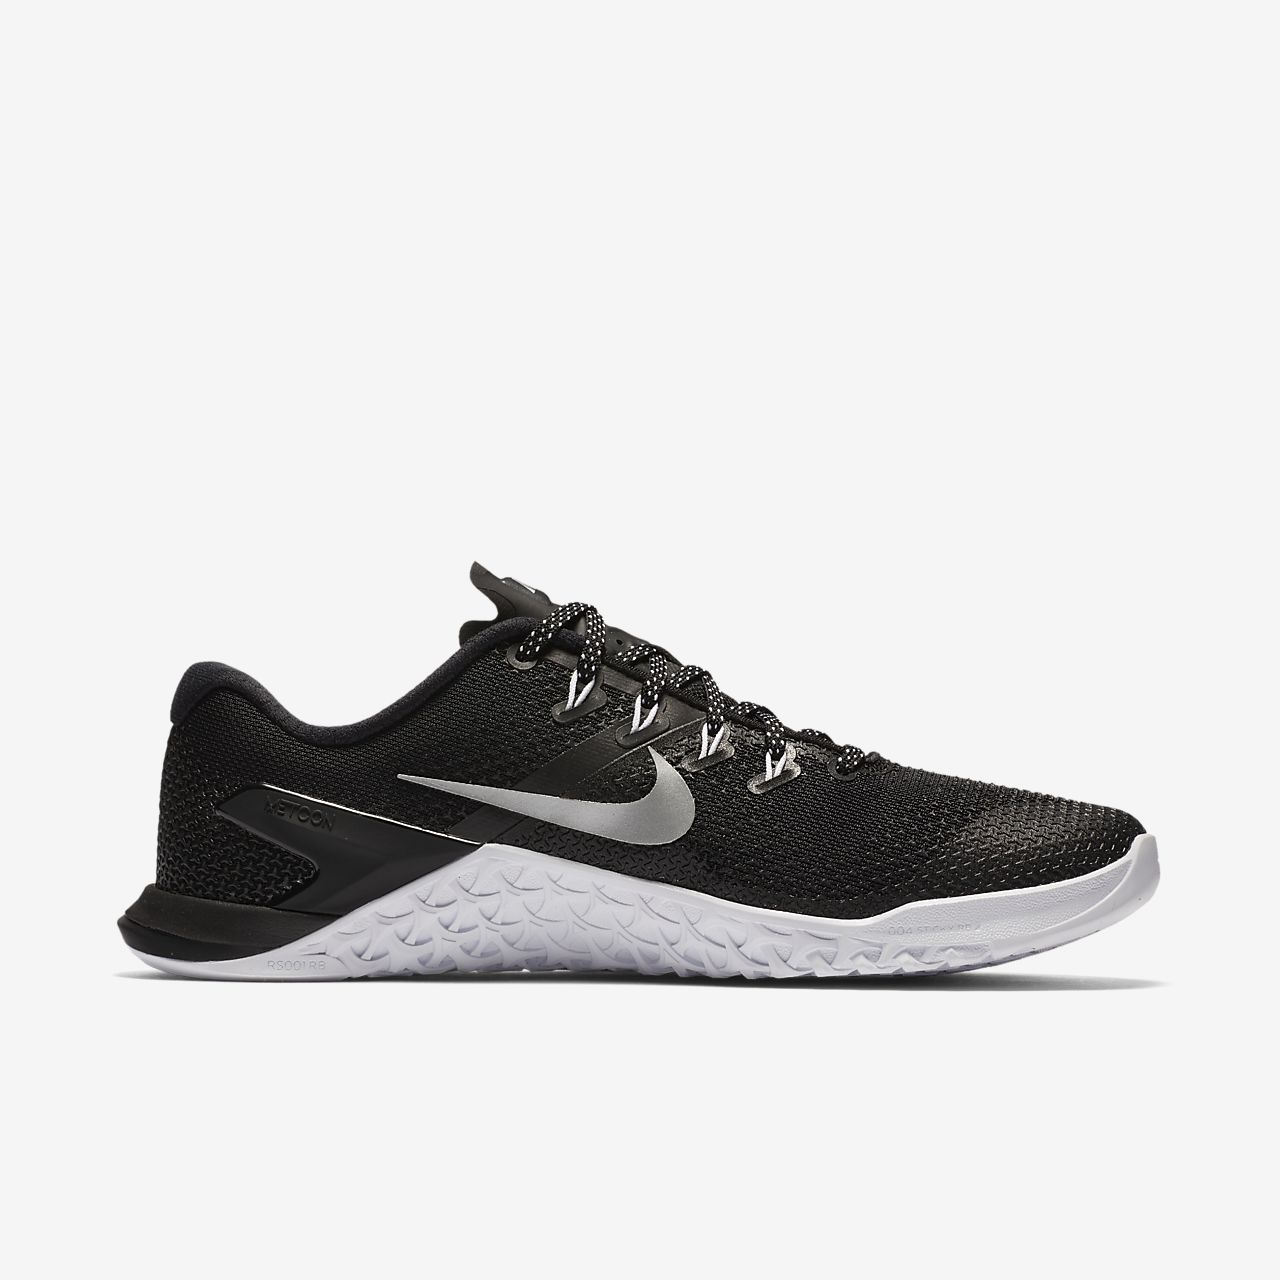 dbe27107ac8e7 Women s Cross Training Weightlifting Shoe. Nike Metcon 4